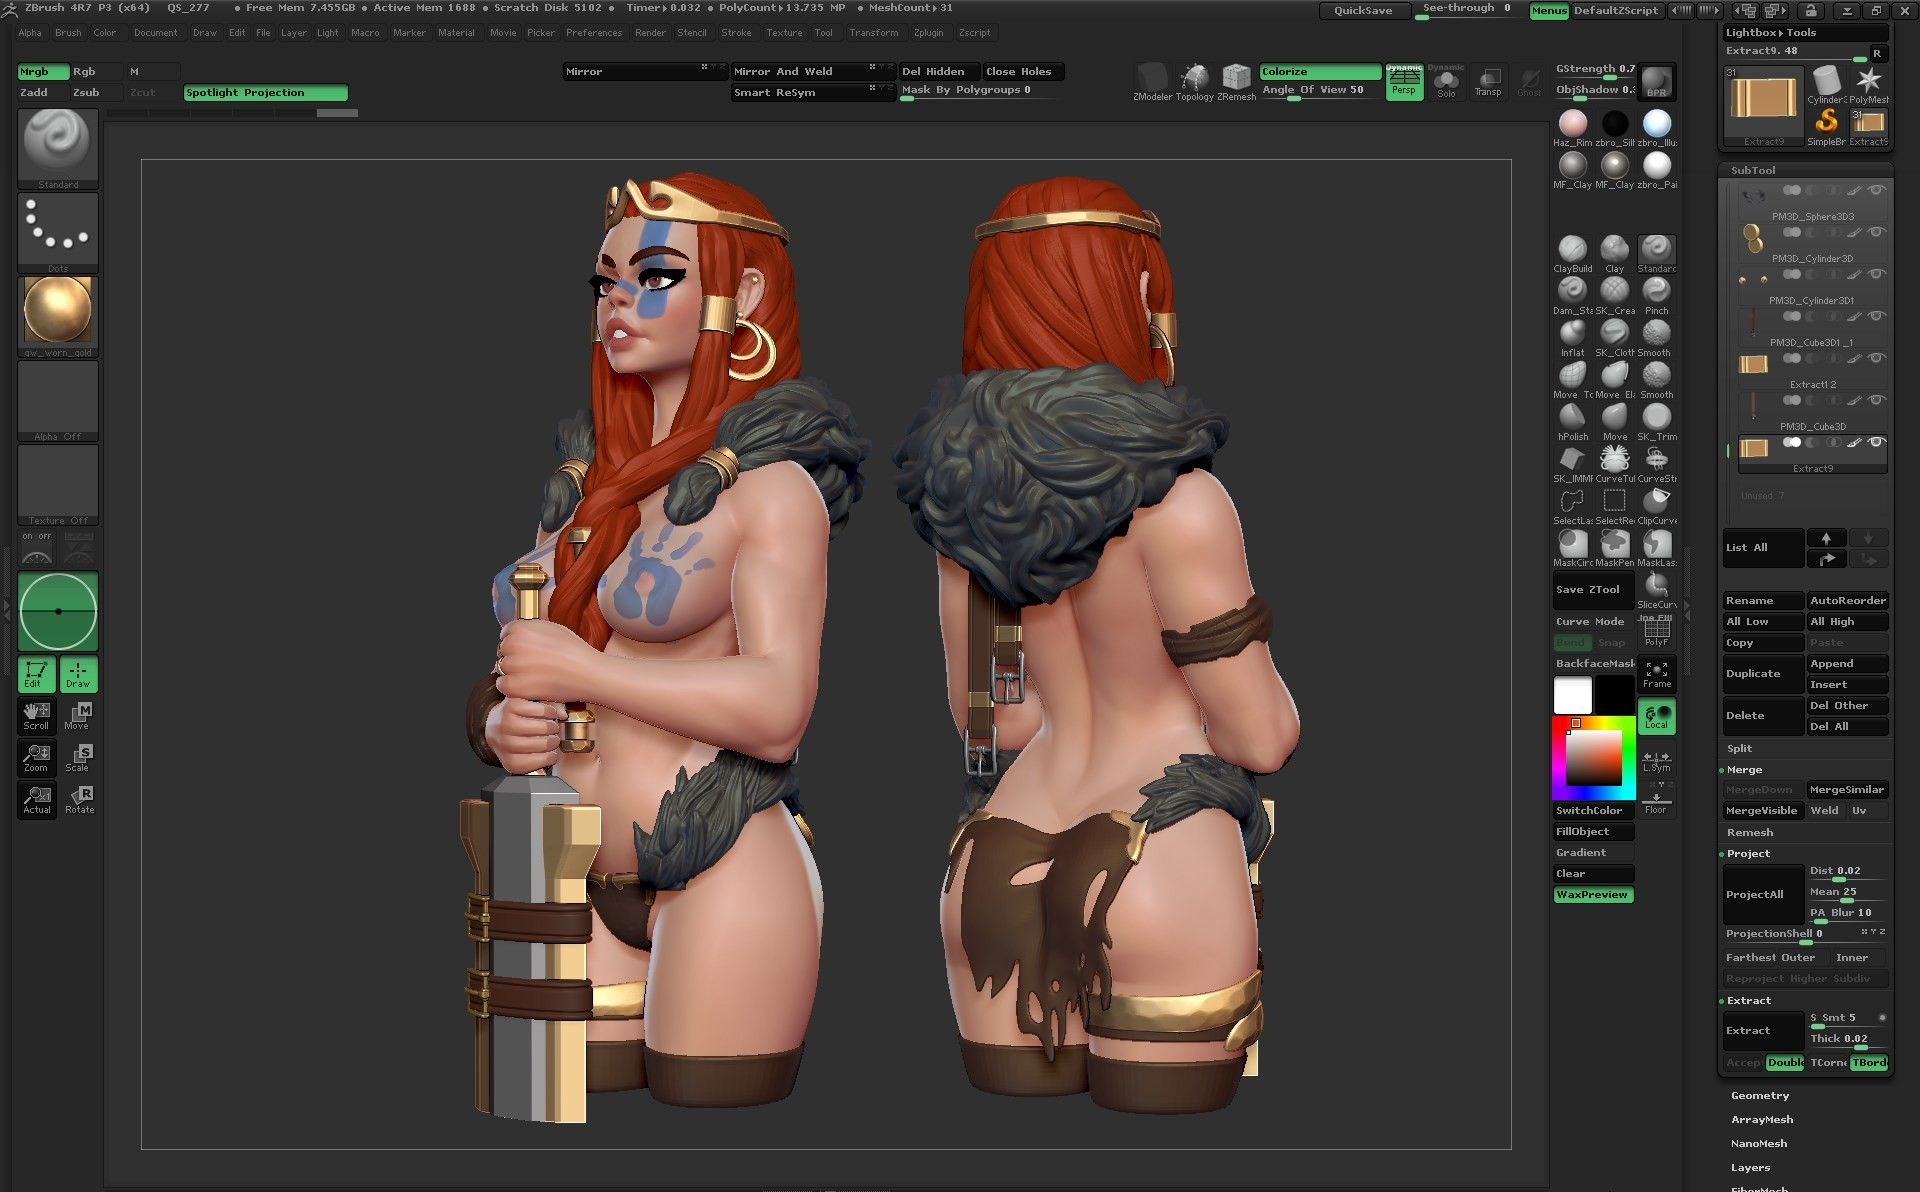 Mercurial forge zbrush64 2016 04 04 23 31 18